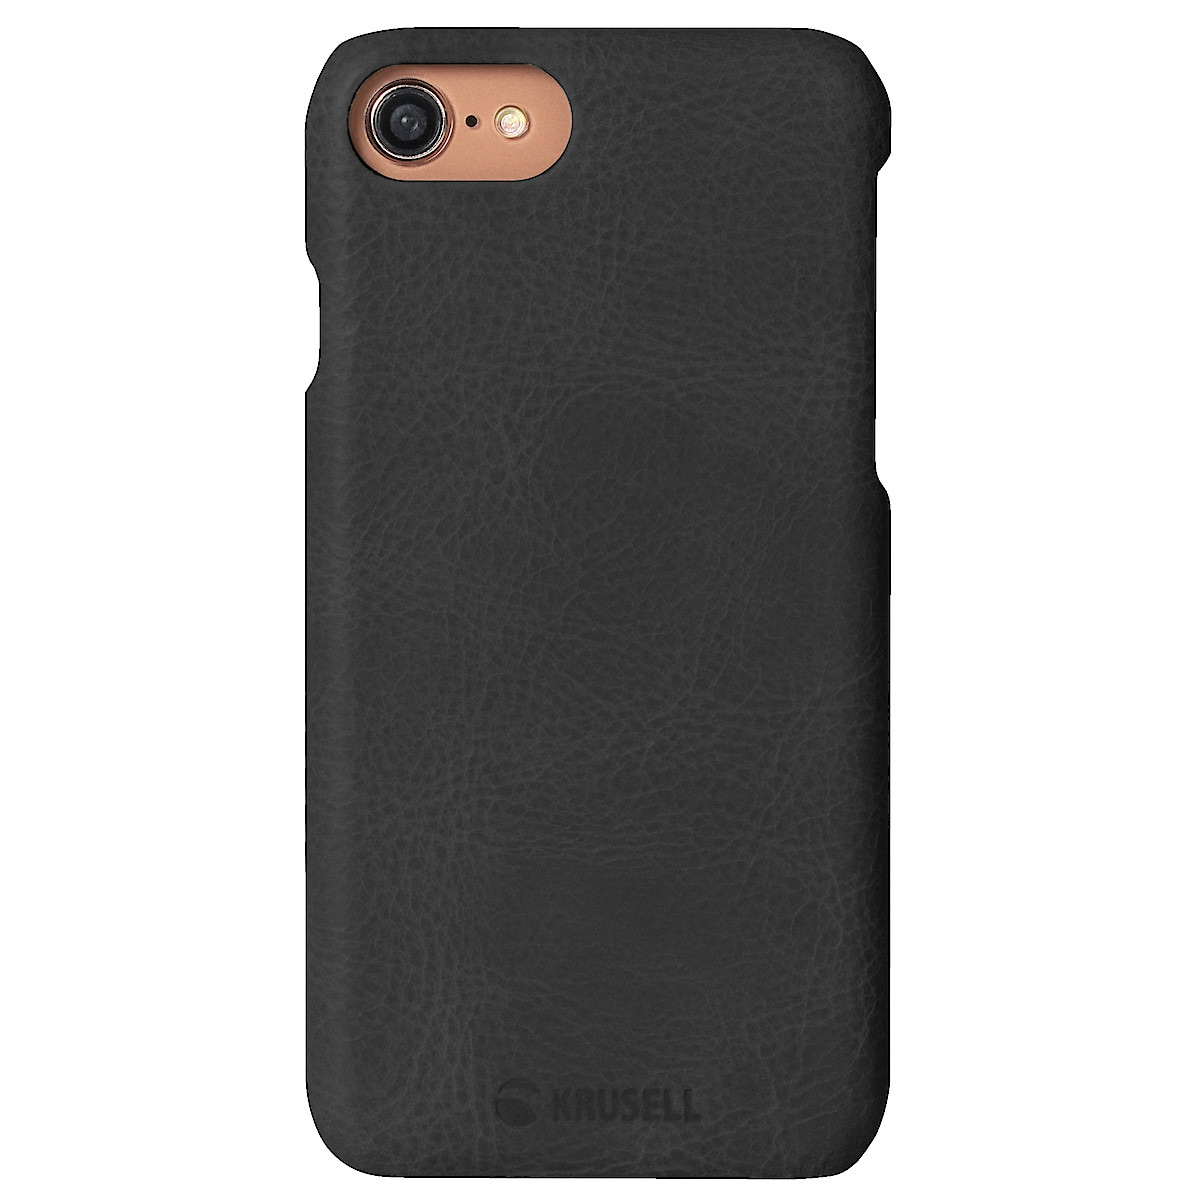 Krusell Sunne Cover deksel for iPhone 8 / iPhone SE 2020